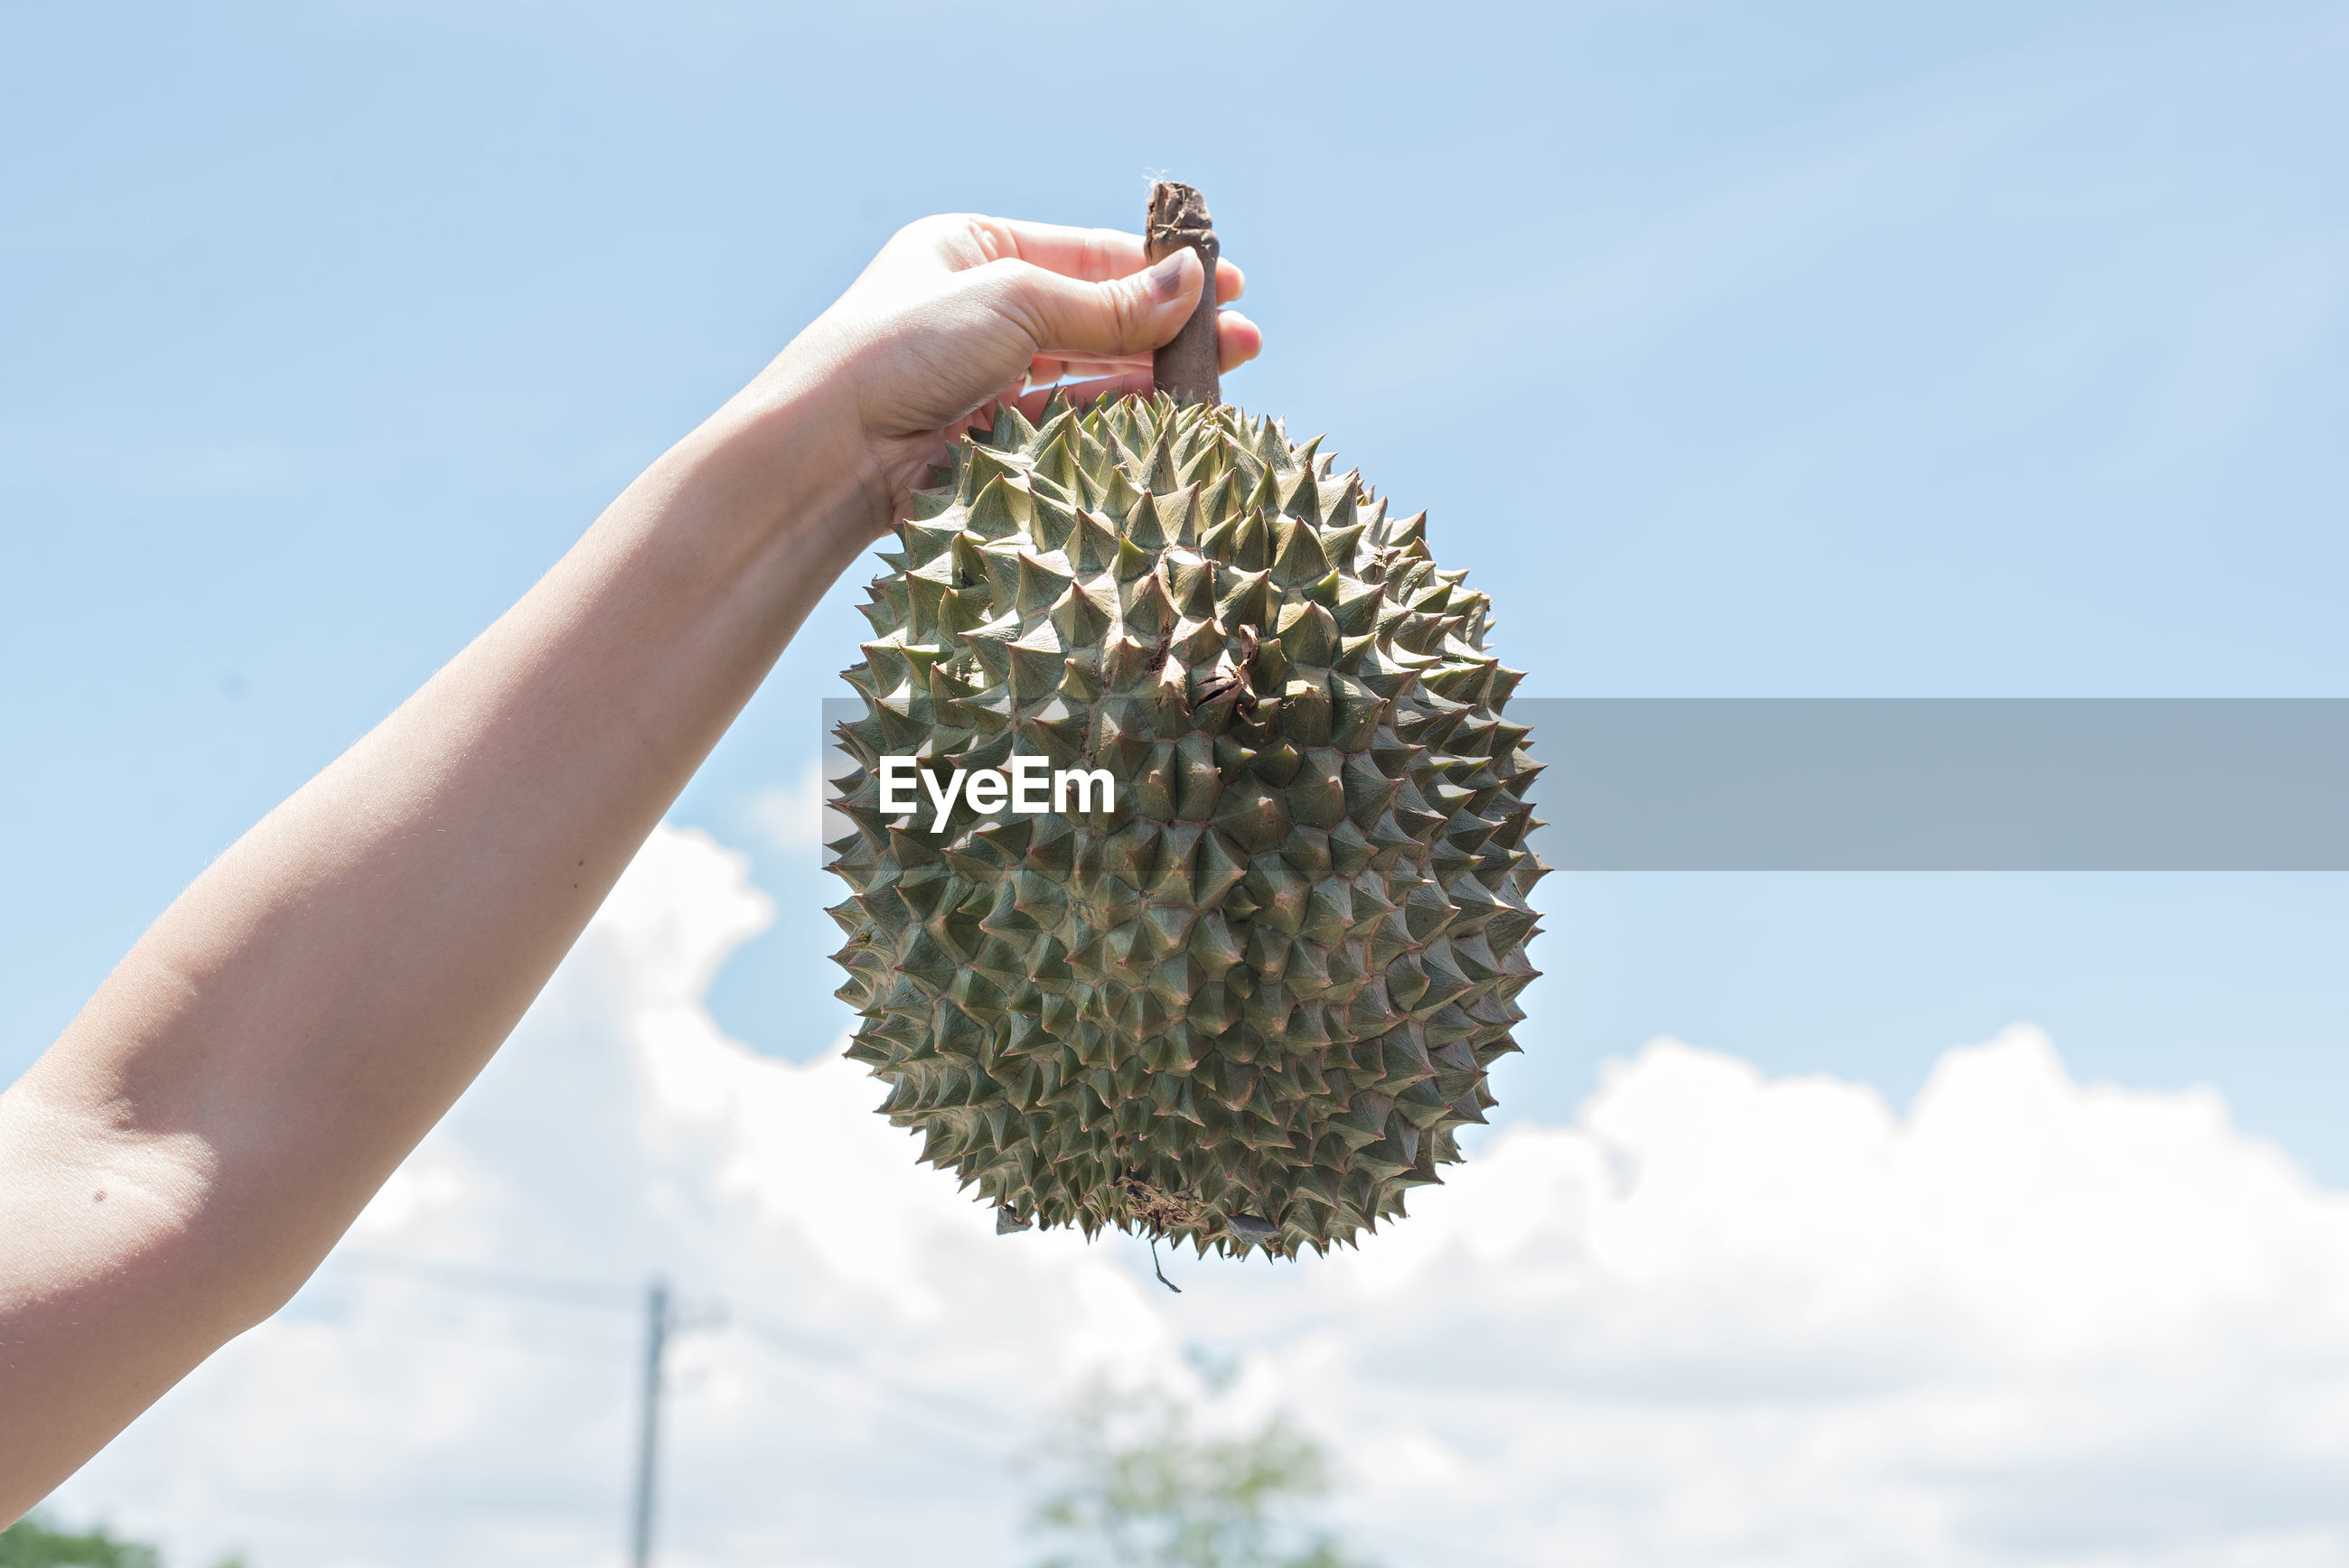 Cropped hand holding durian against sky